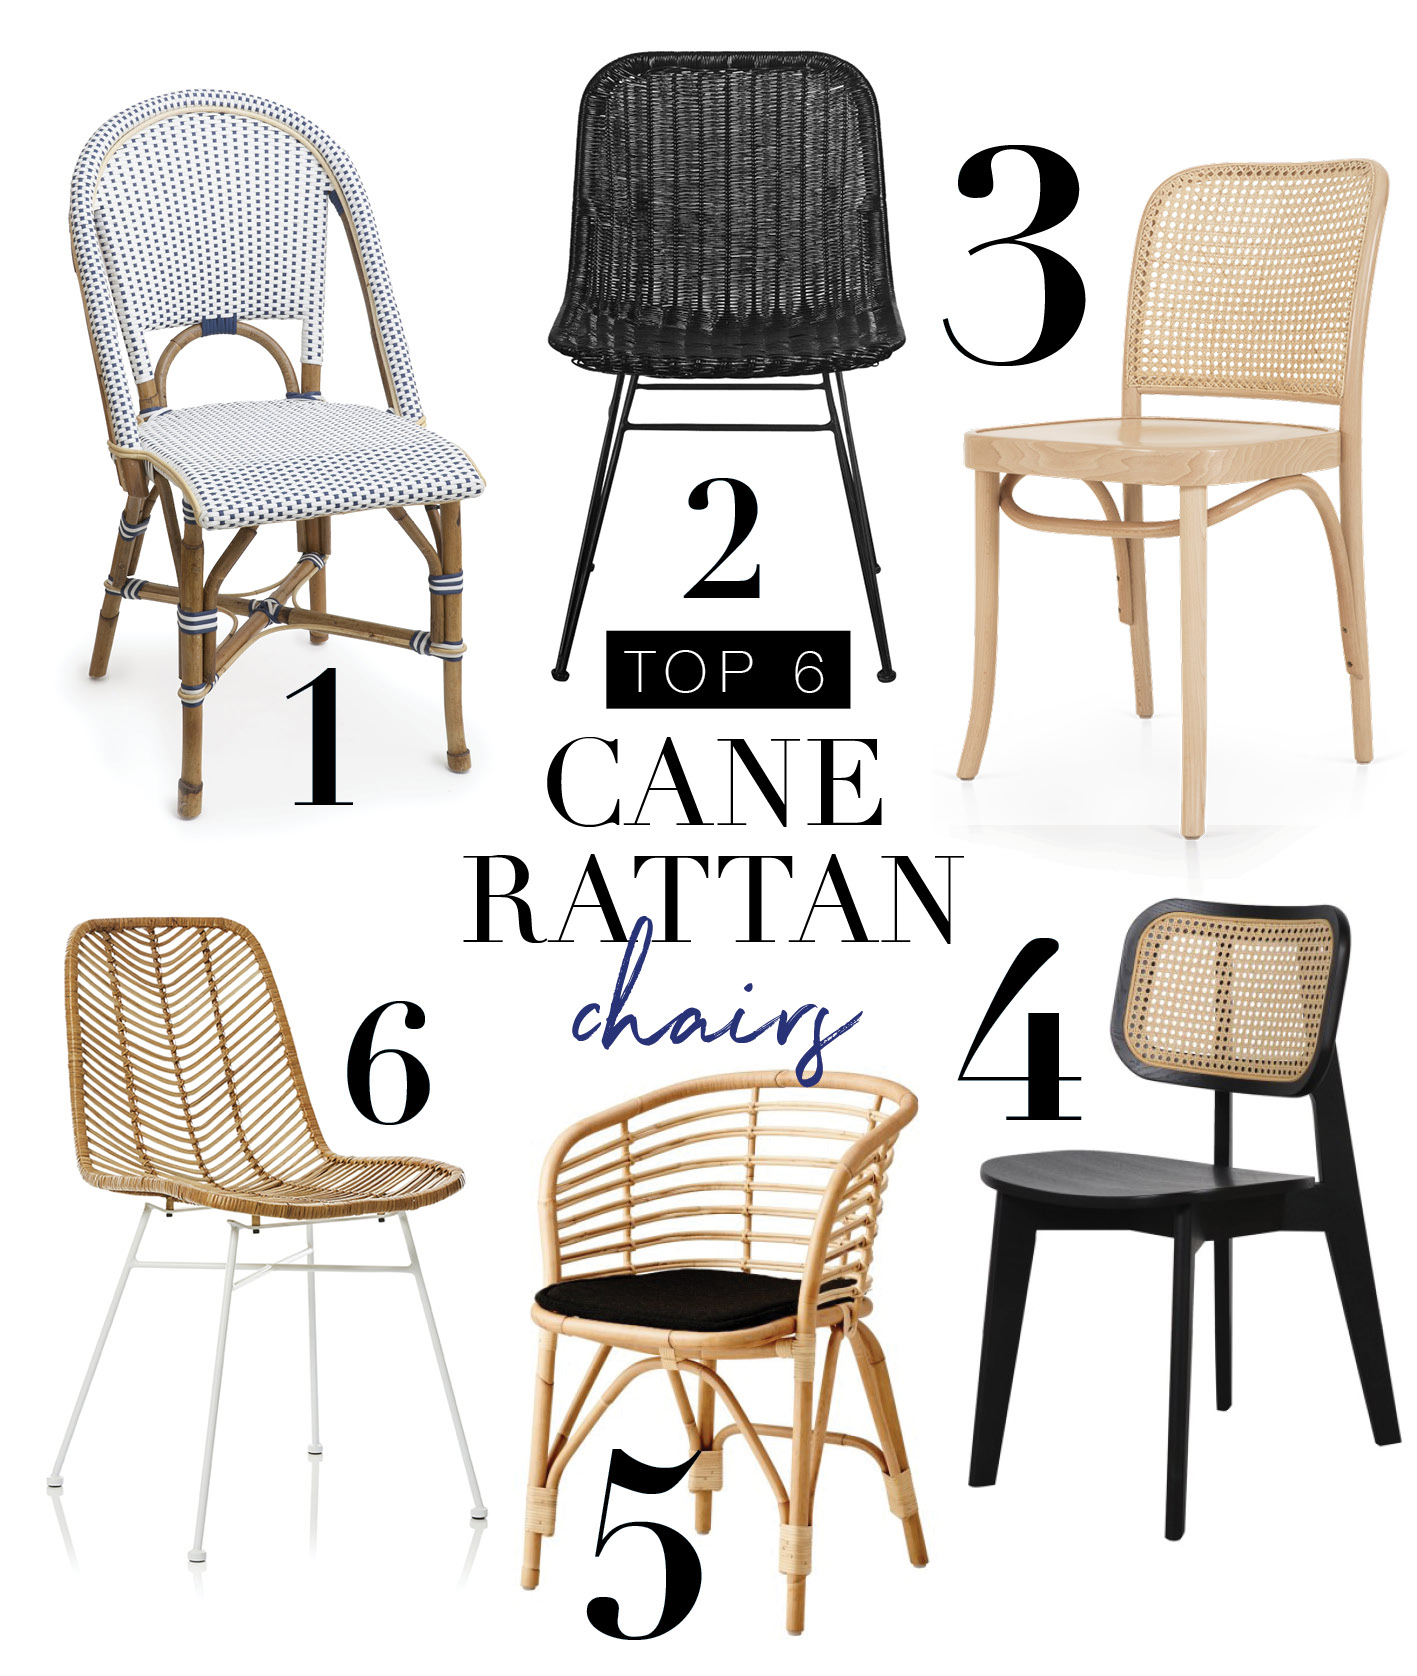 adore_home_magazine_blog_dining_chairs_edit_woven_cane_rattan.jpg